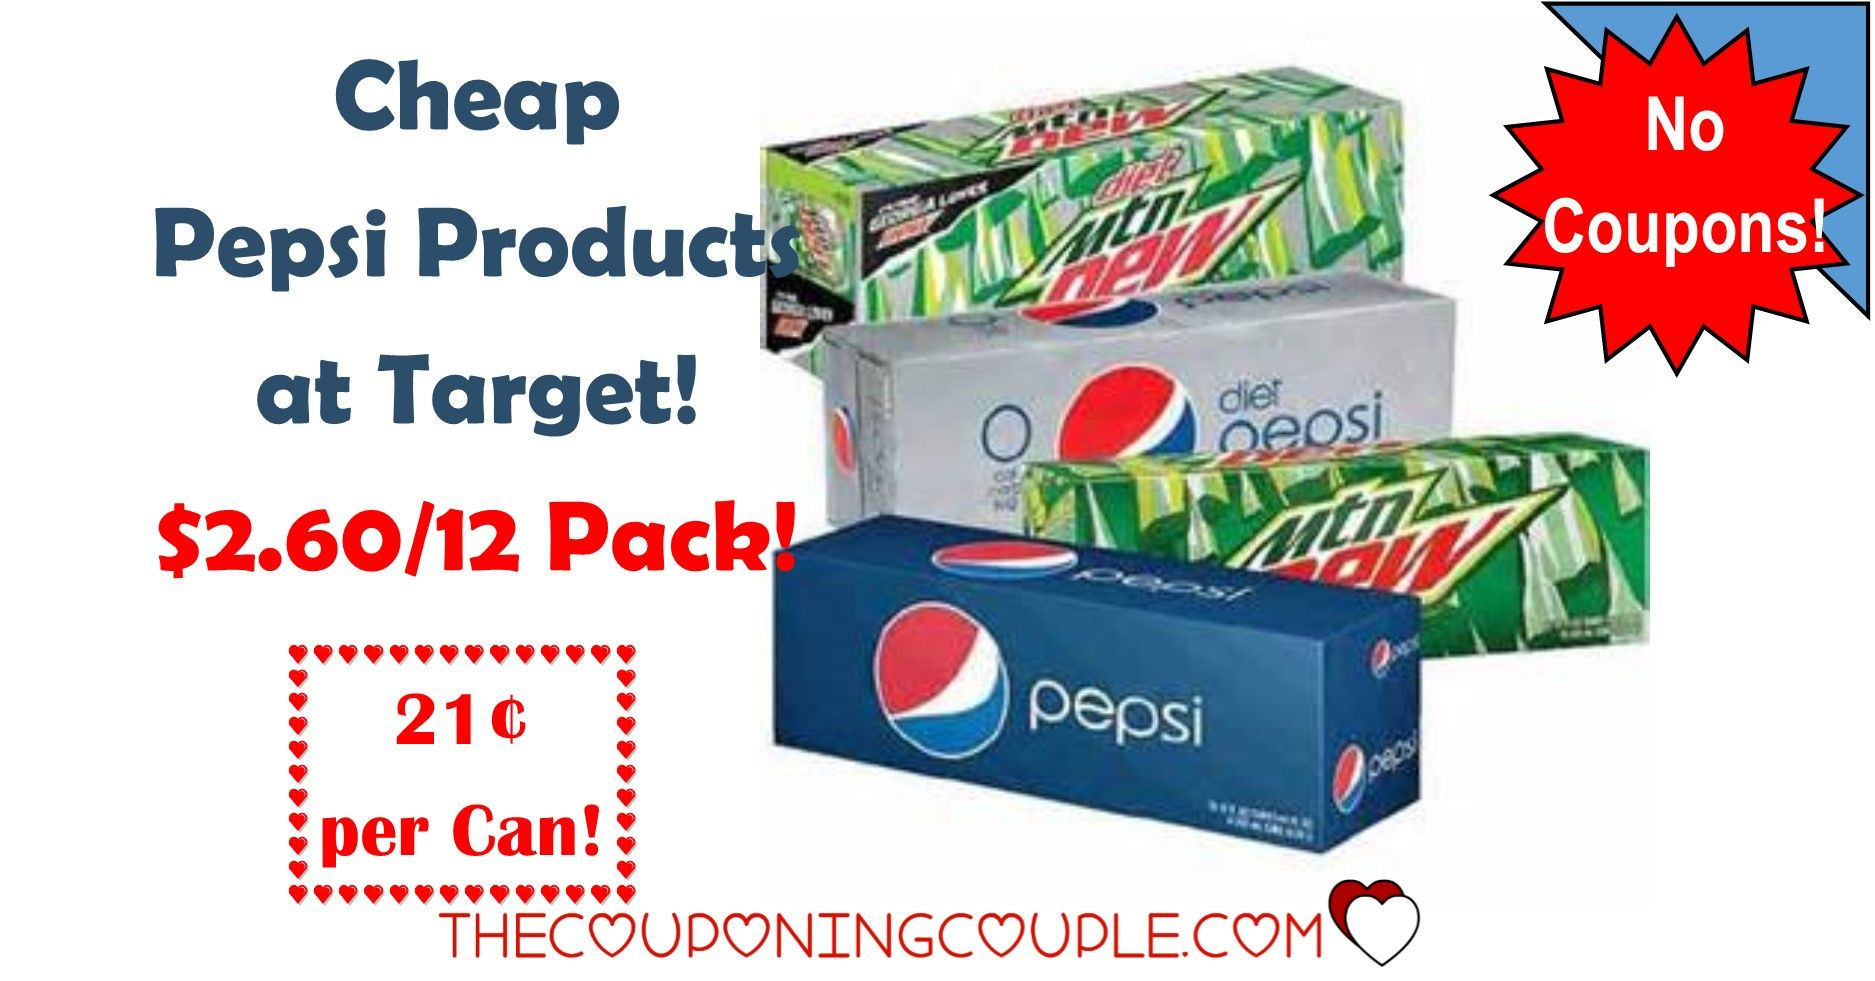 Cheap Pepsi Products At Target 2 60 12 Pack 0 21 Per Can Pepsi Canning Cheap